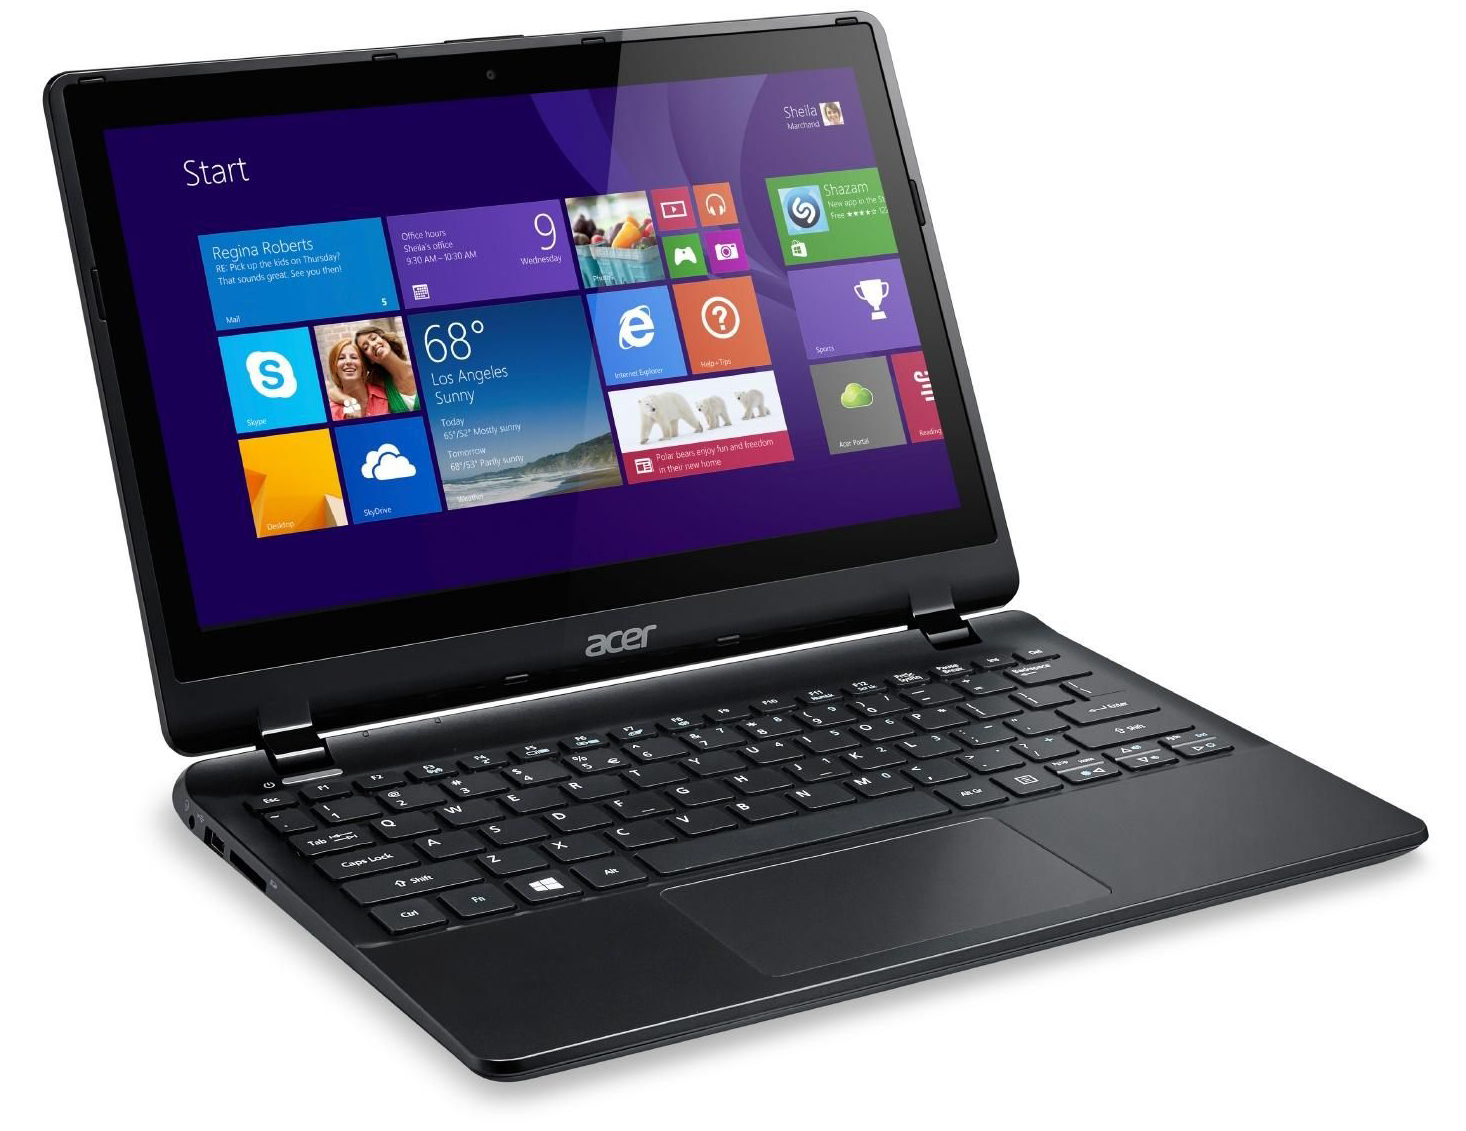 Acer TravelMate B116-MP Intel WLAN Drivers for Windows XP